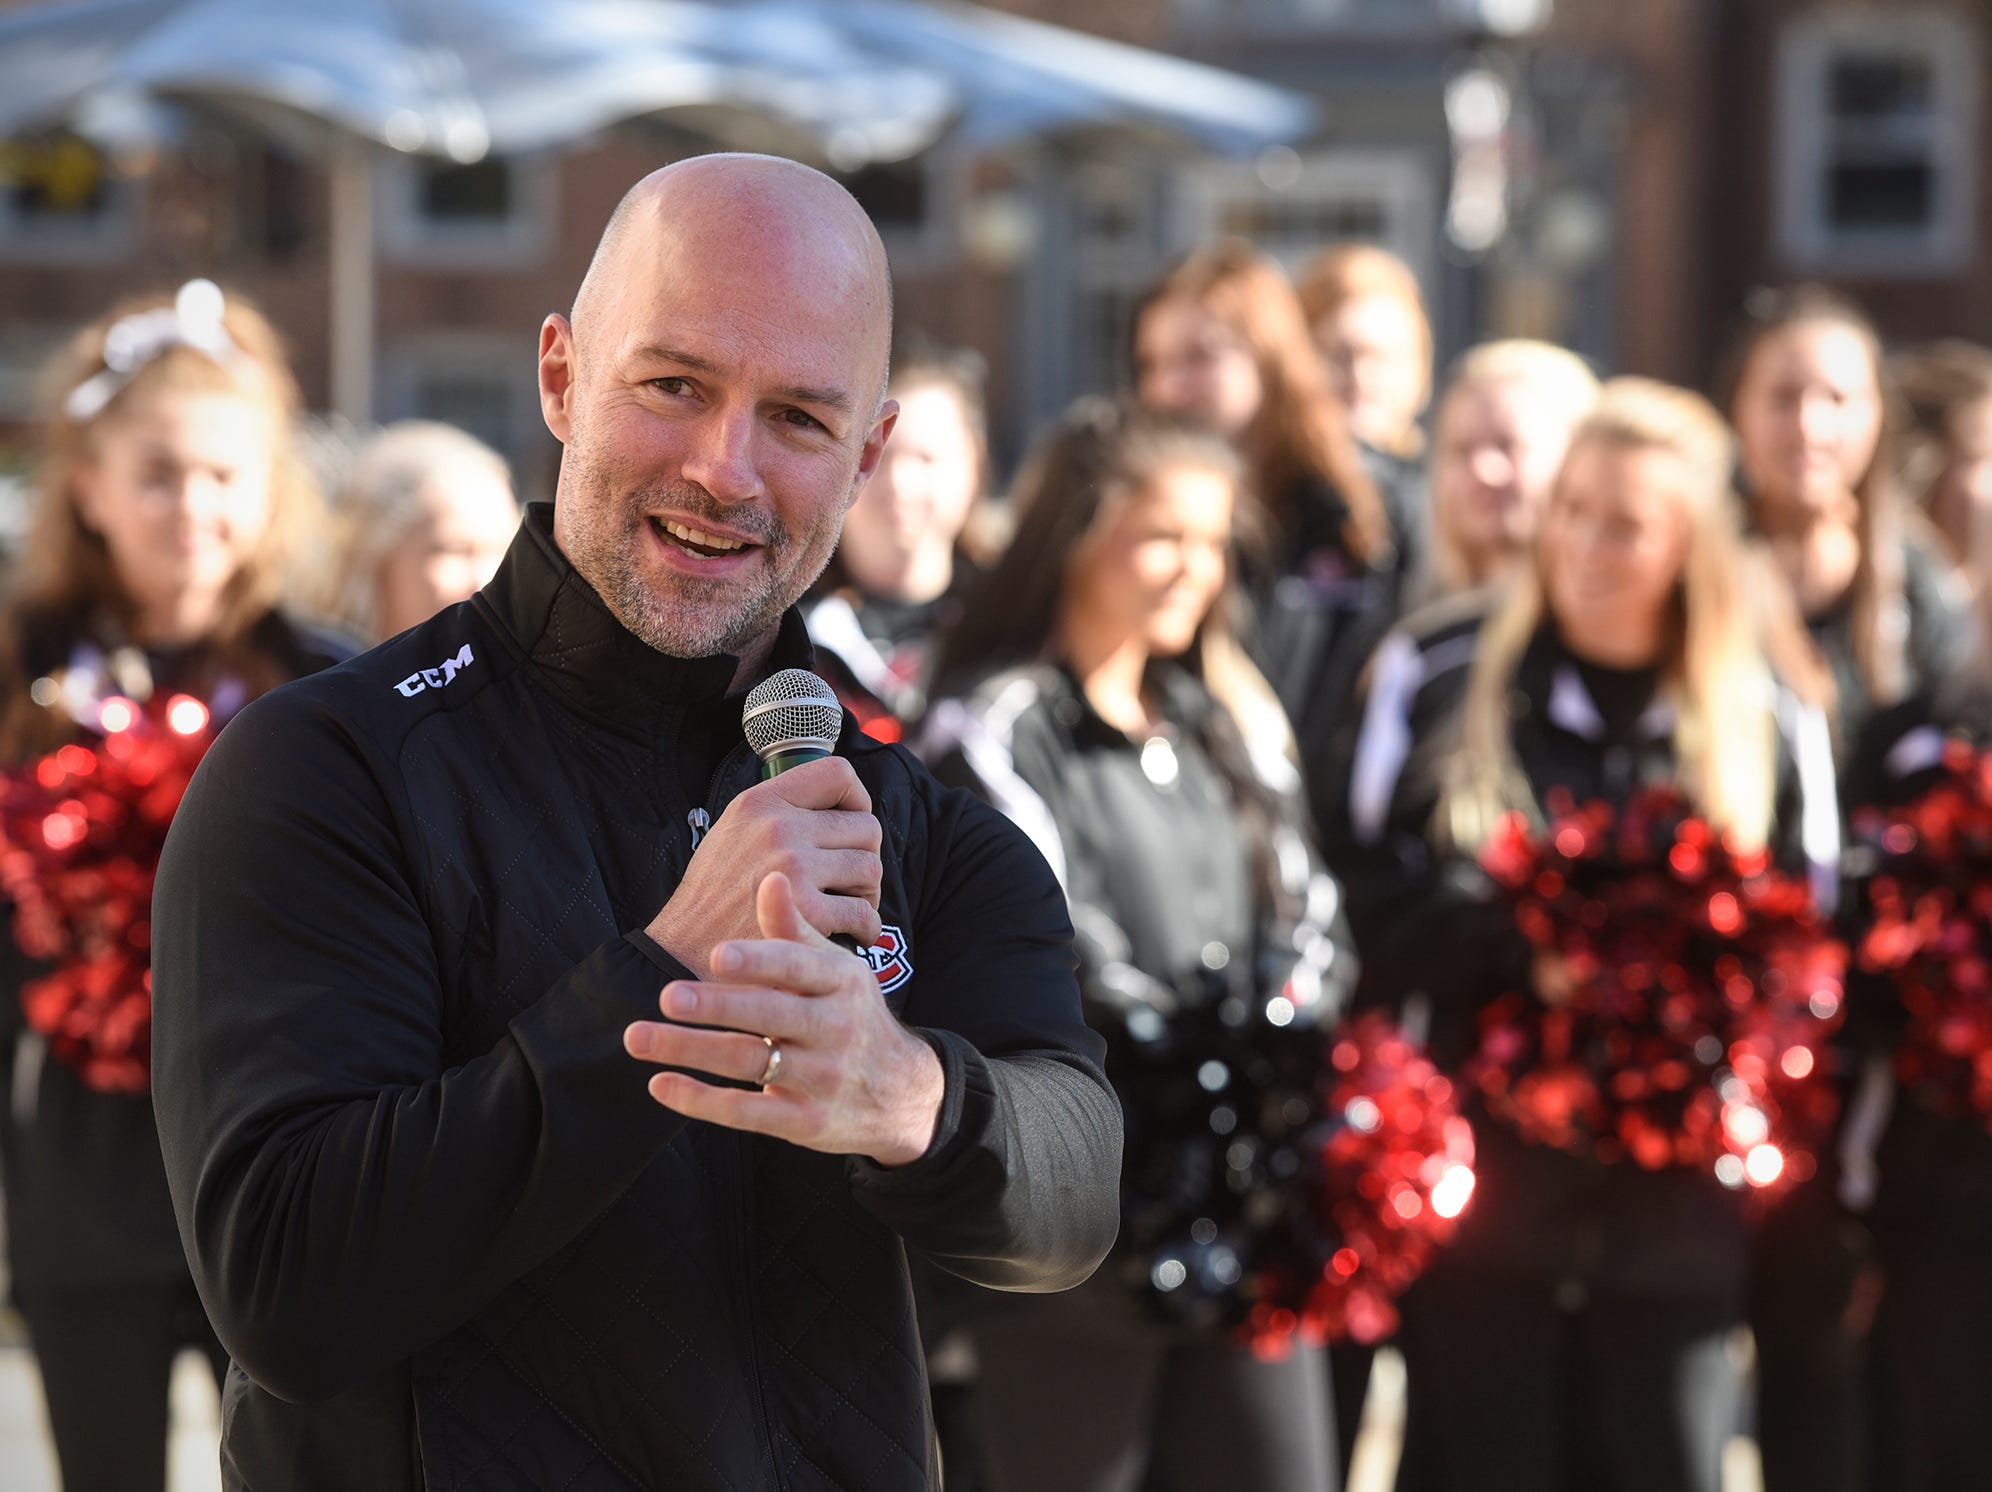 St. Cloud State men's hockey coach Brett Larson speaks during homecoming kick-off activities Wednesday, Oct. 17, at St. Cloud State University's Atwood Memorial Center Mall.